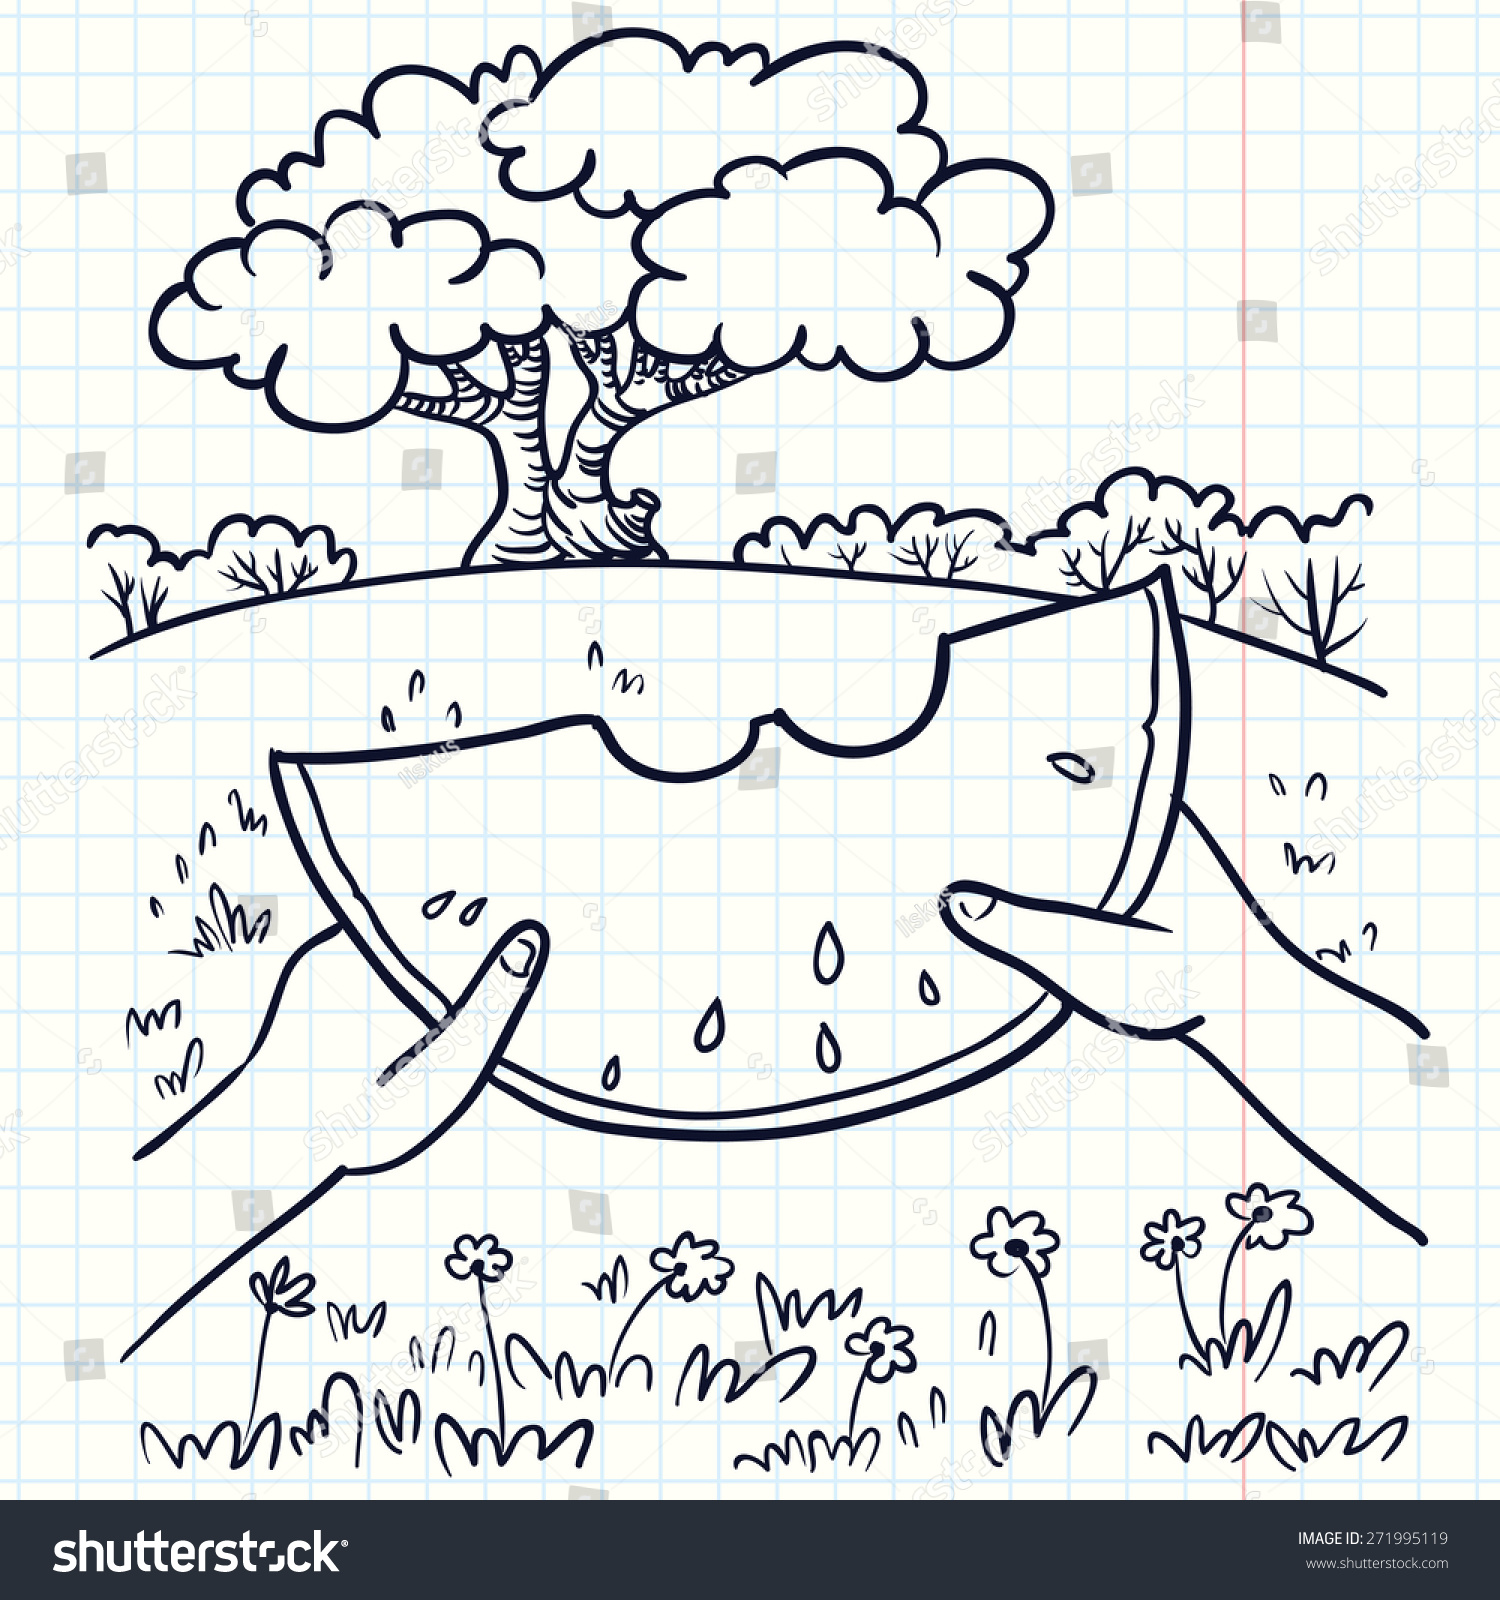 handdrawn doodle illustration summer landscape watermelon stock